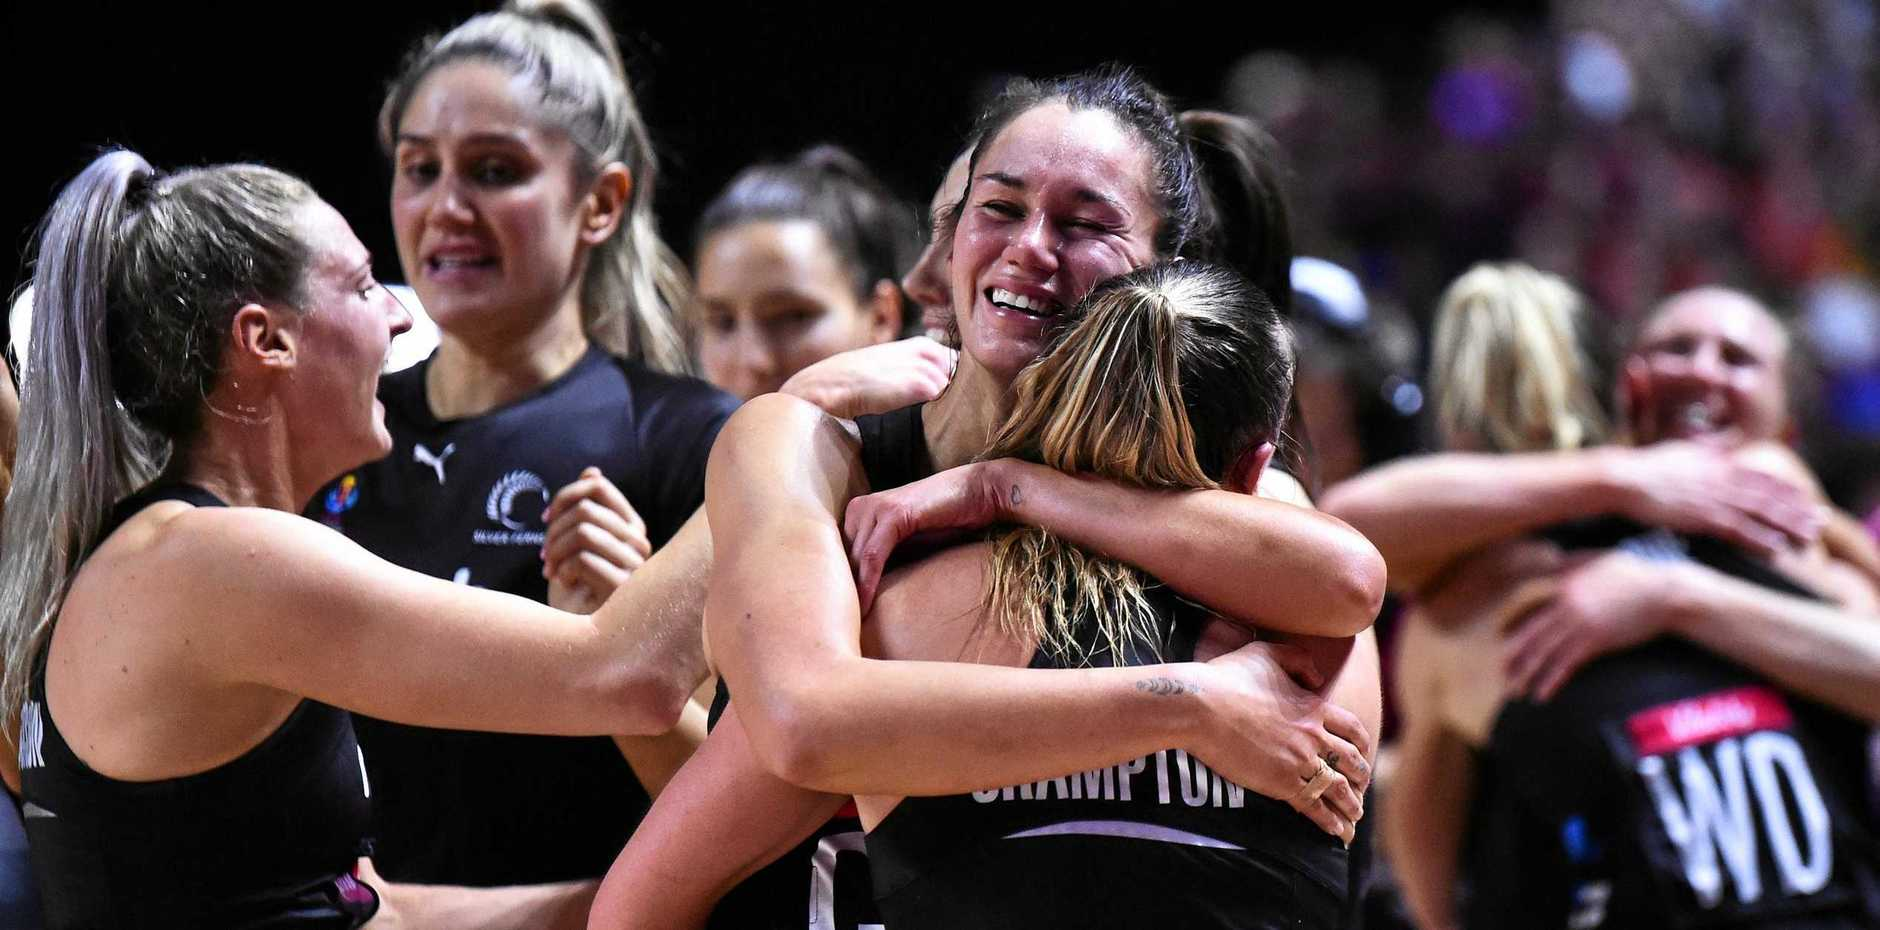 EMOTION: Bundaberg's Ameliaranne Ekenasio lets out happy tears after New Zealand won the Netball World Cup final against Australia in England.